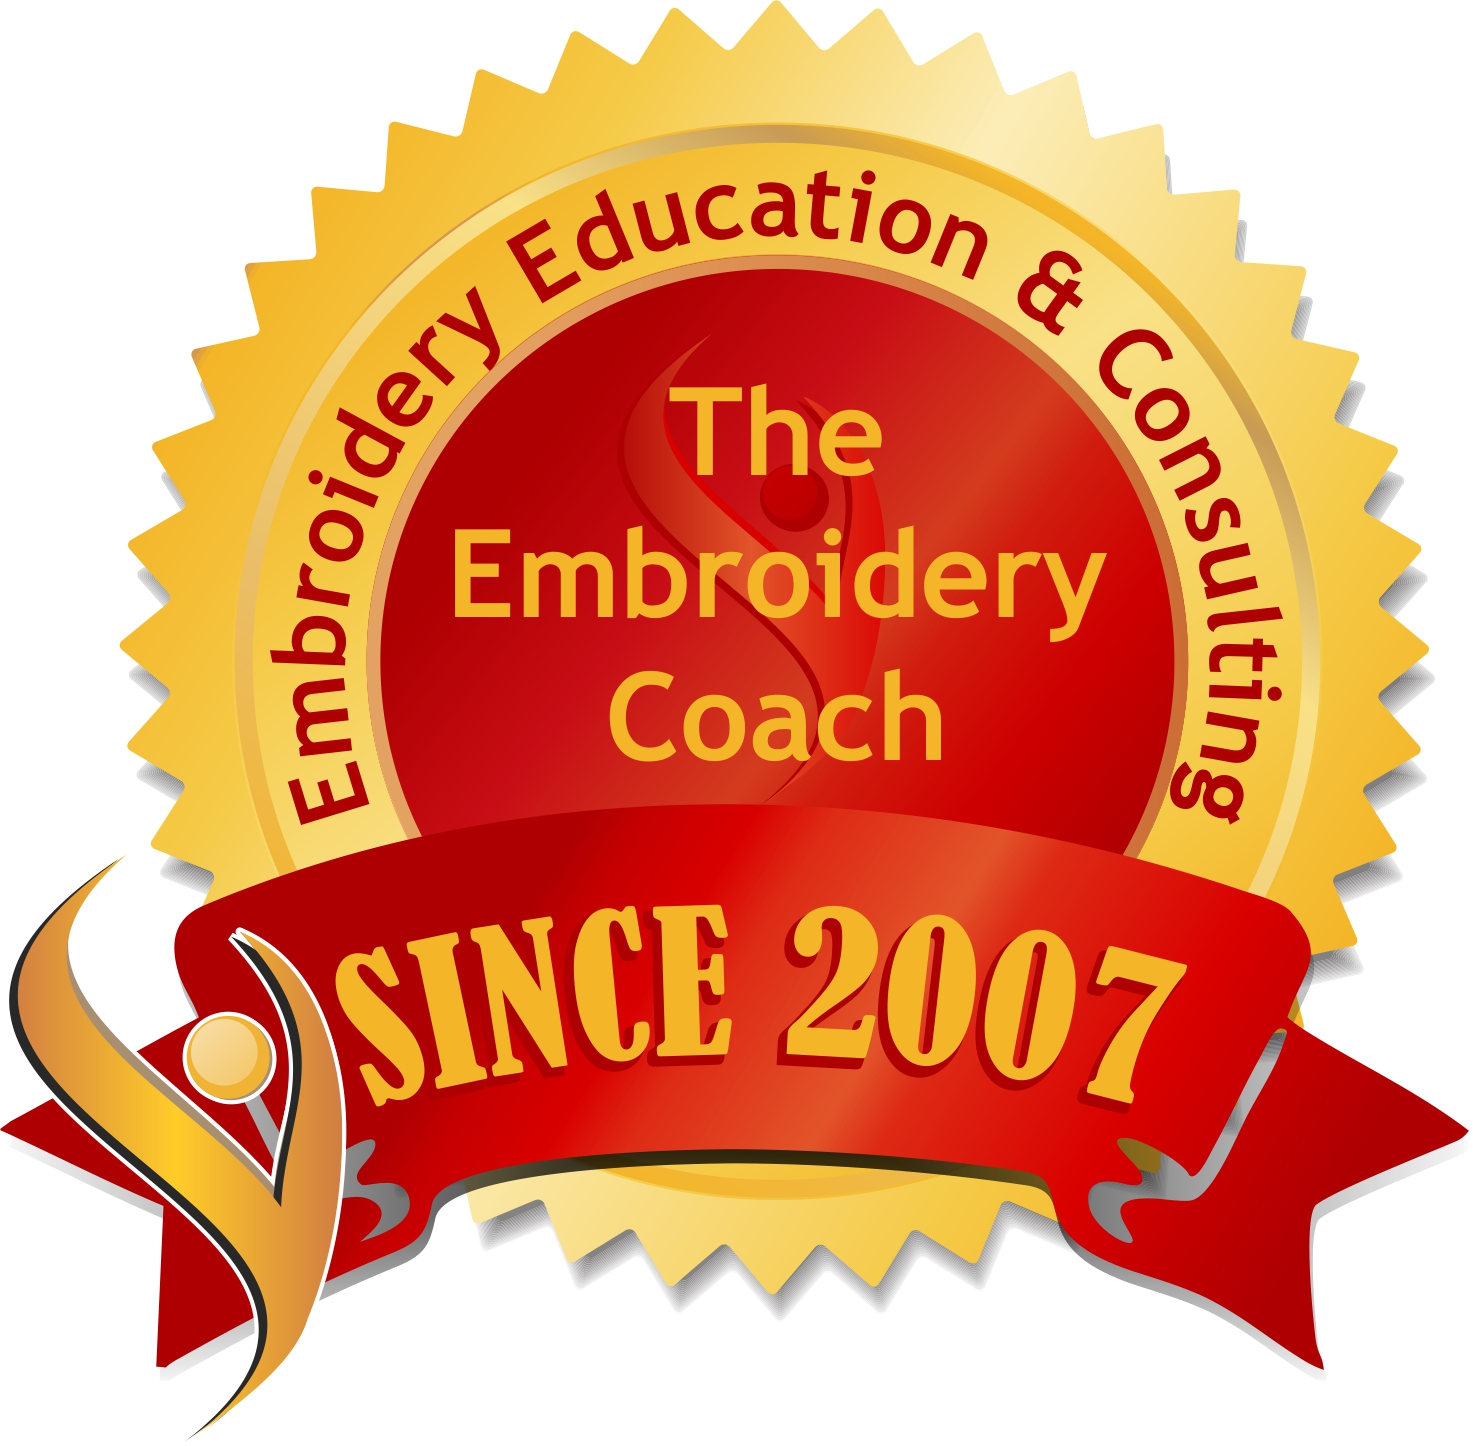 Embroidery Industry Expert | The Embroidery Coach - Embroidery